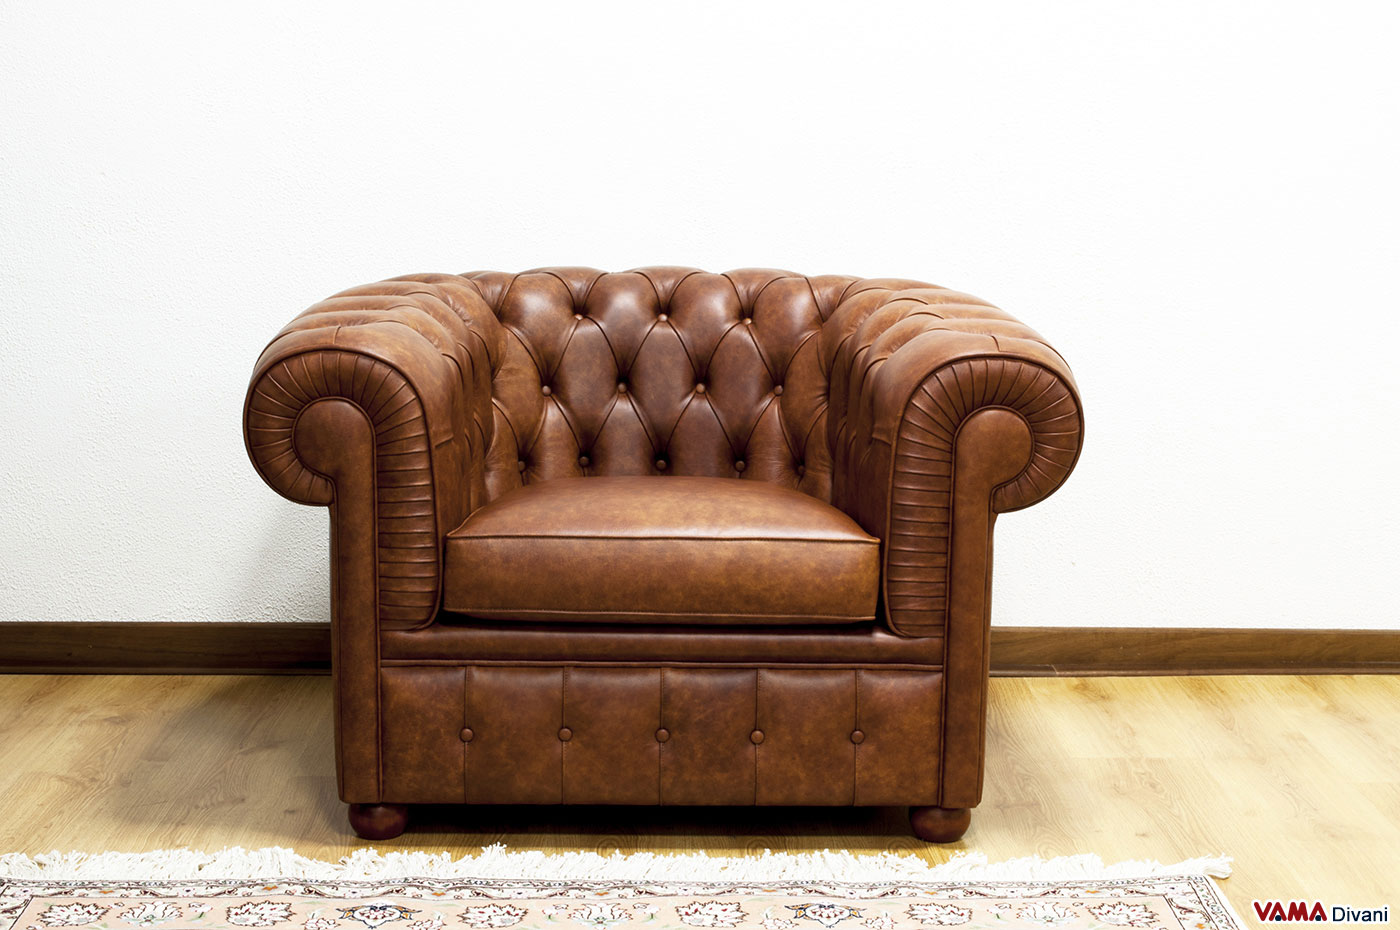 Salotto Chesterfield Vintage in Pelle Marrone Invecchiata